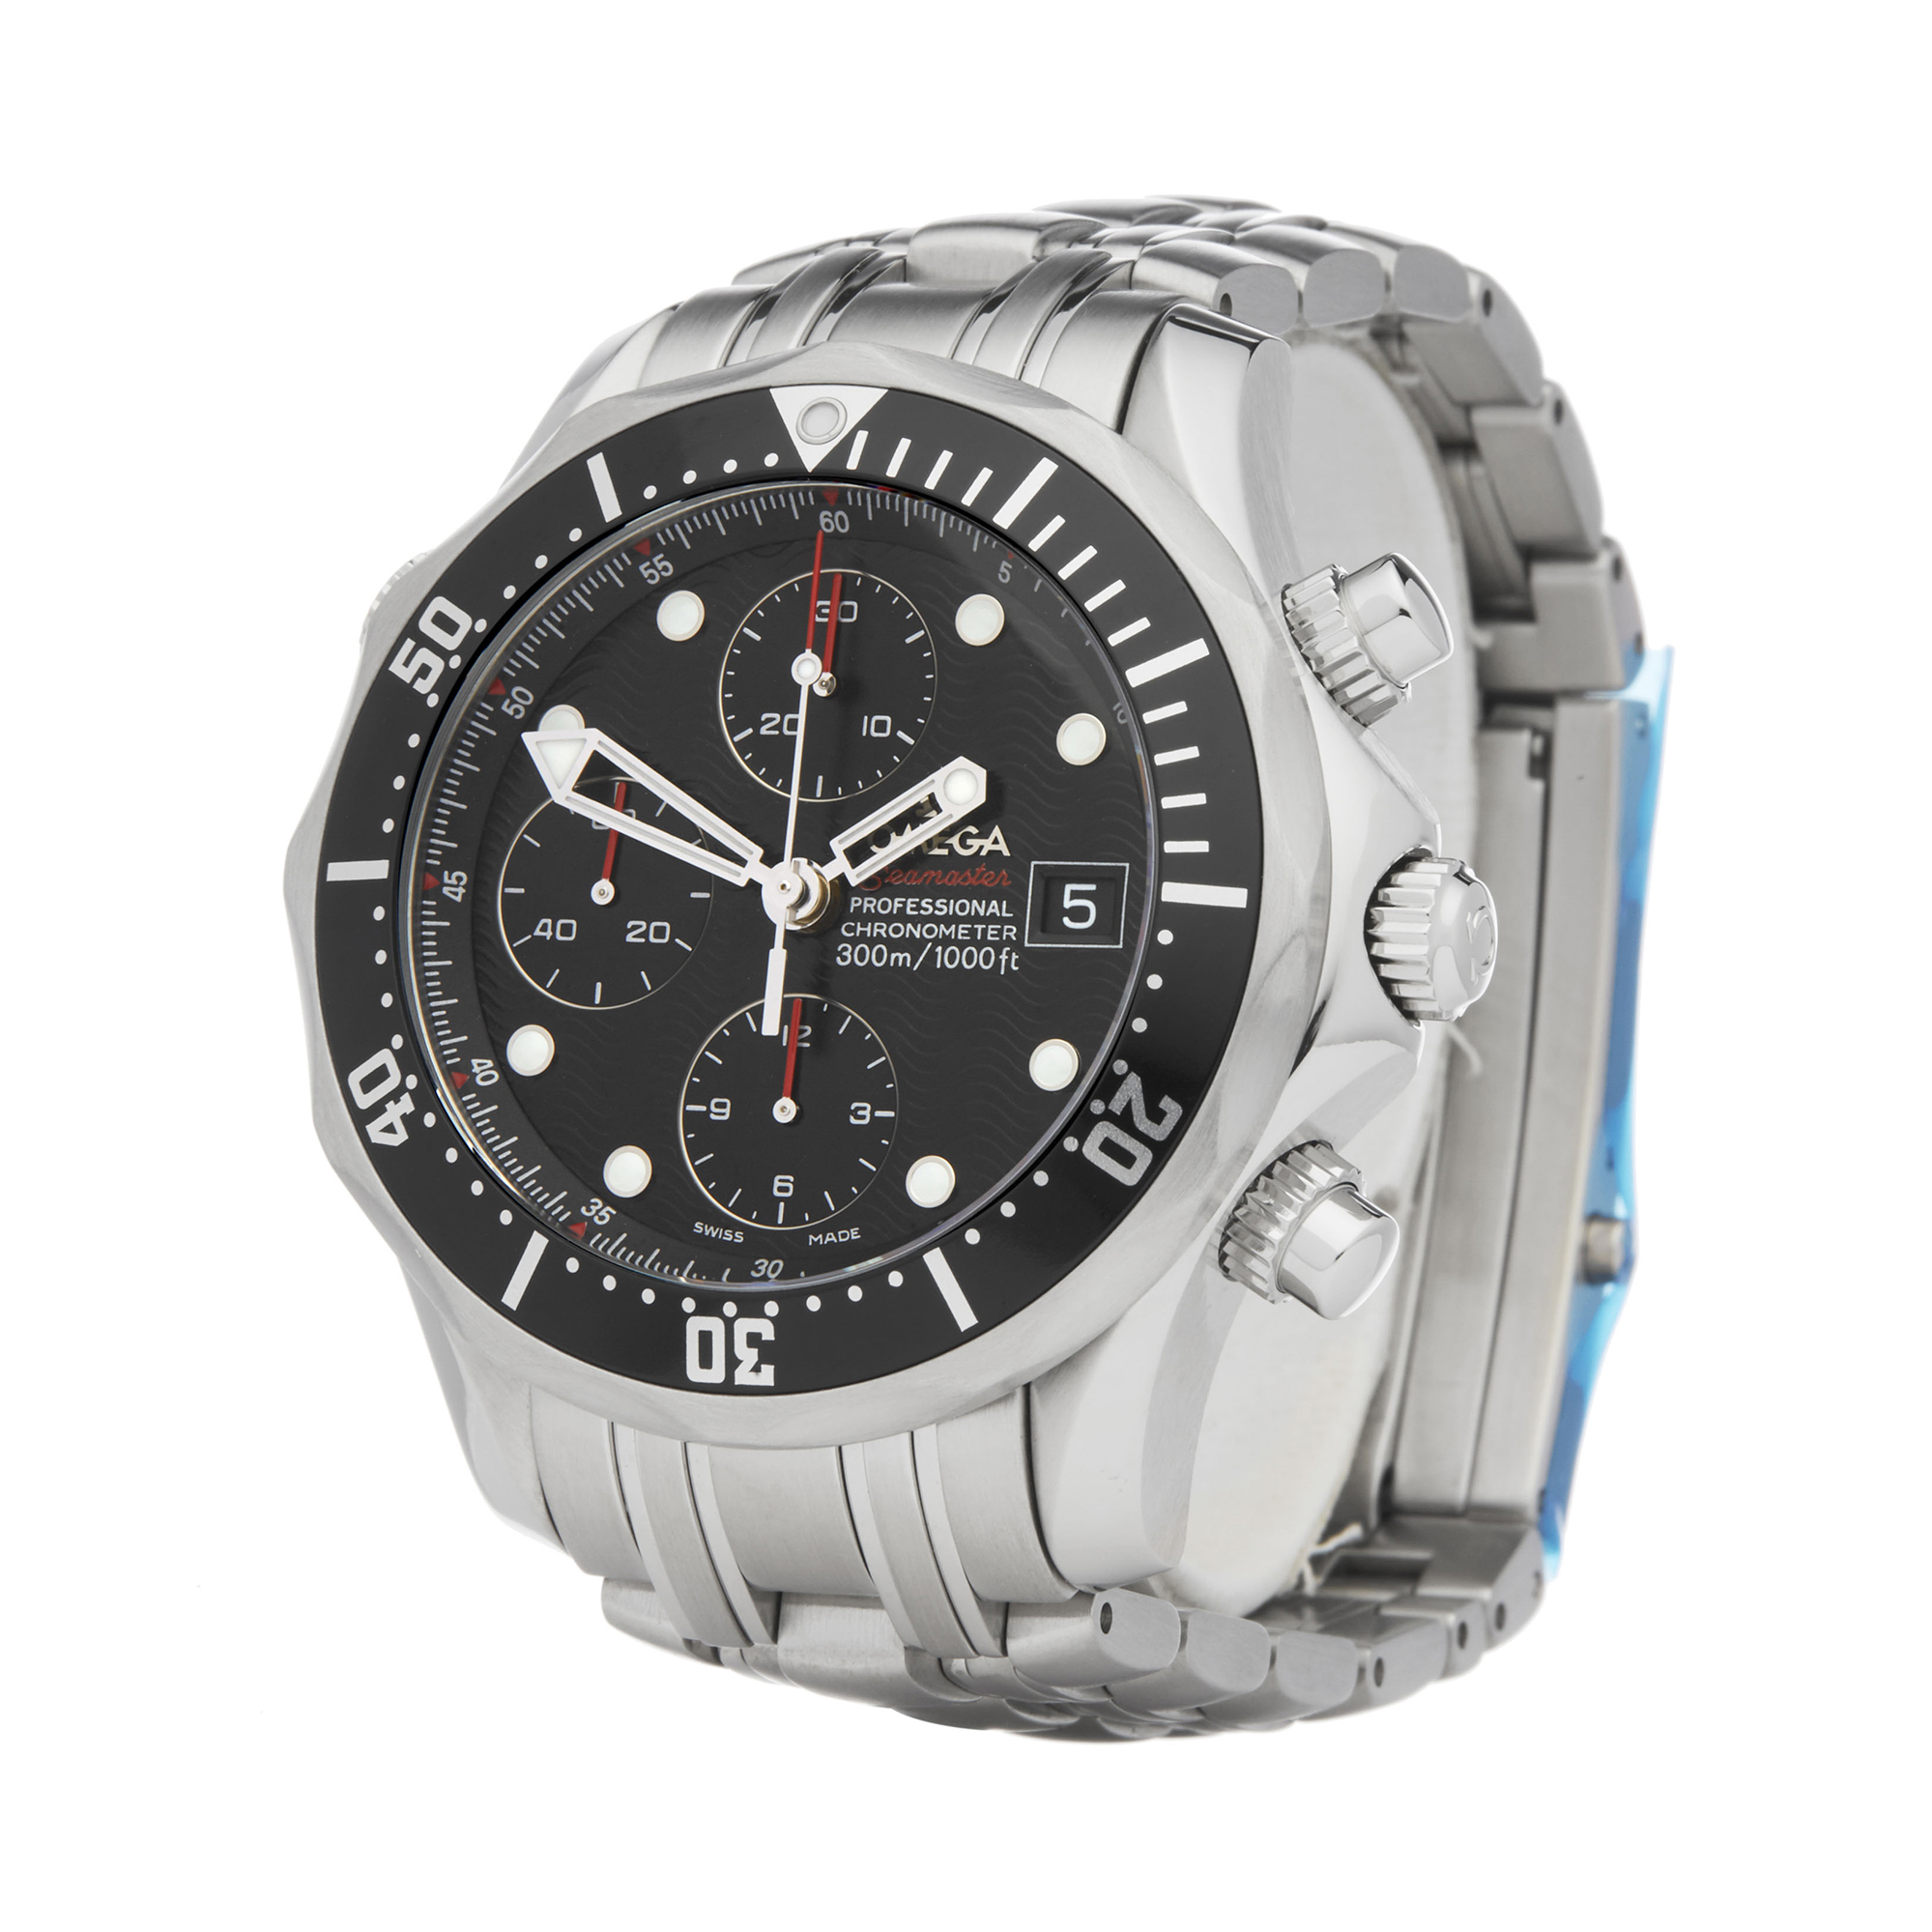 Omega Seamaster 0 213.30.42.40.01.001 Men Stainless Steel Chronograph Watch